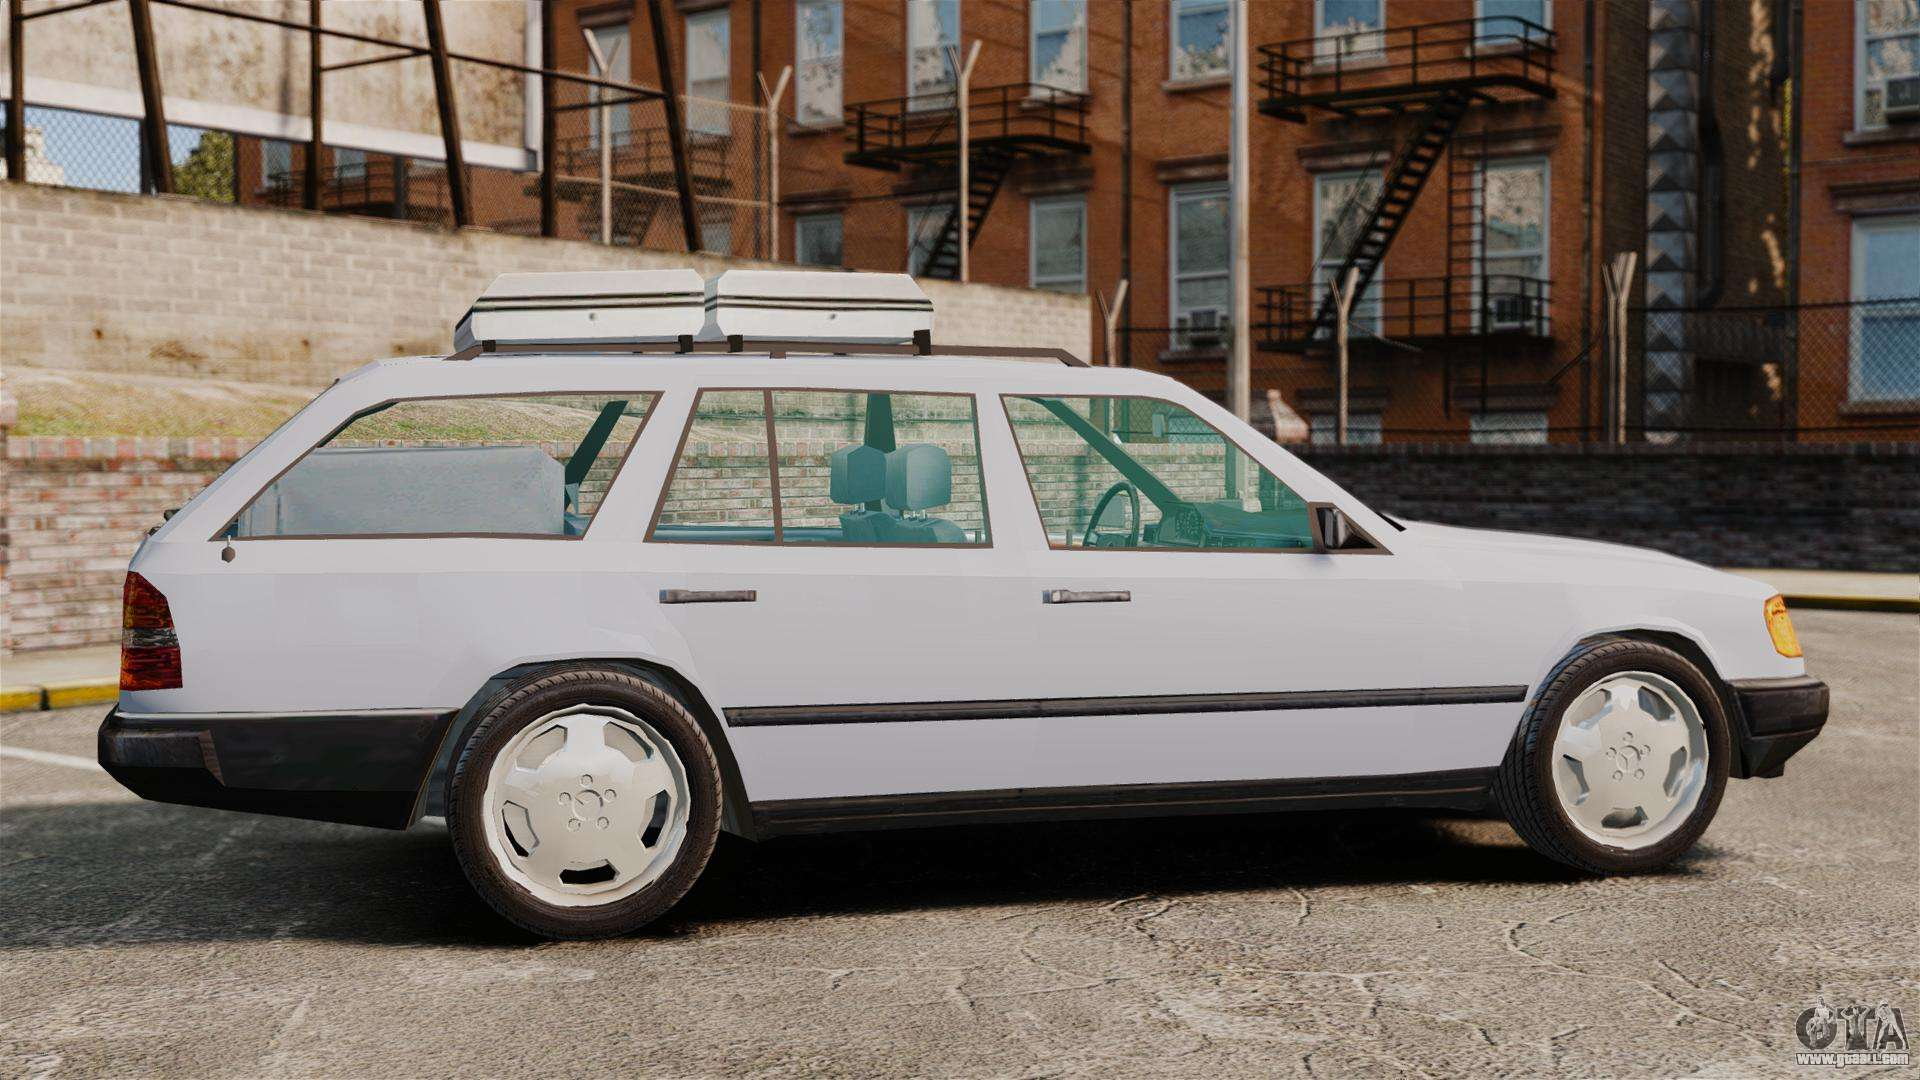 Mercedes benz w124 wagon s124 for gta 4 for Mercedes benz wagons